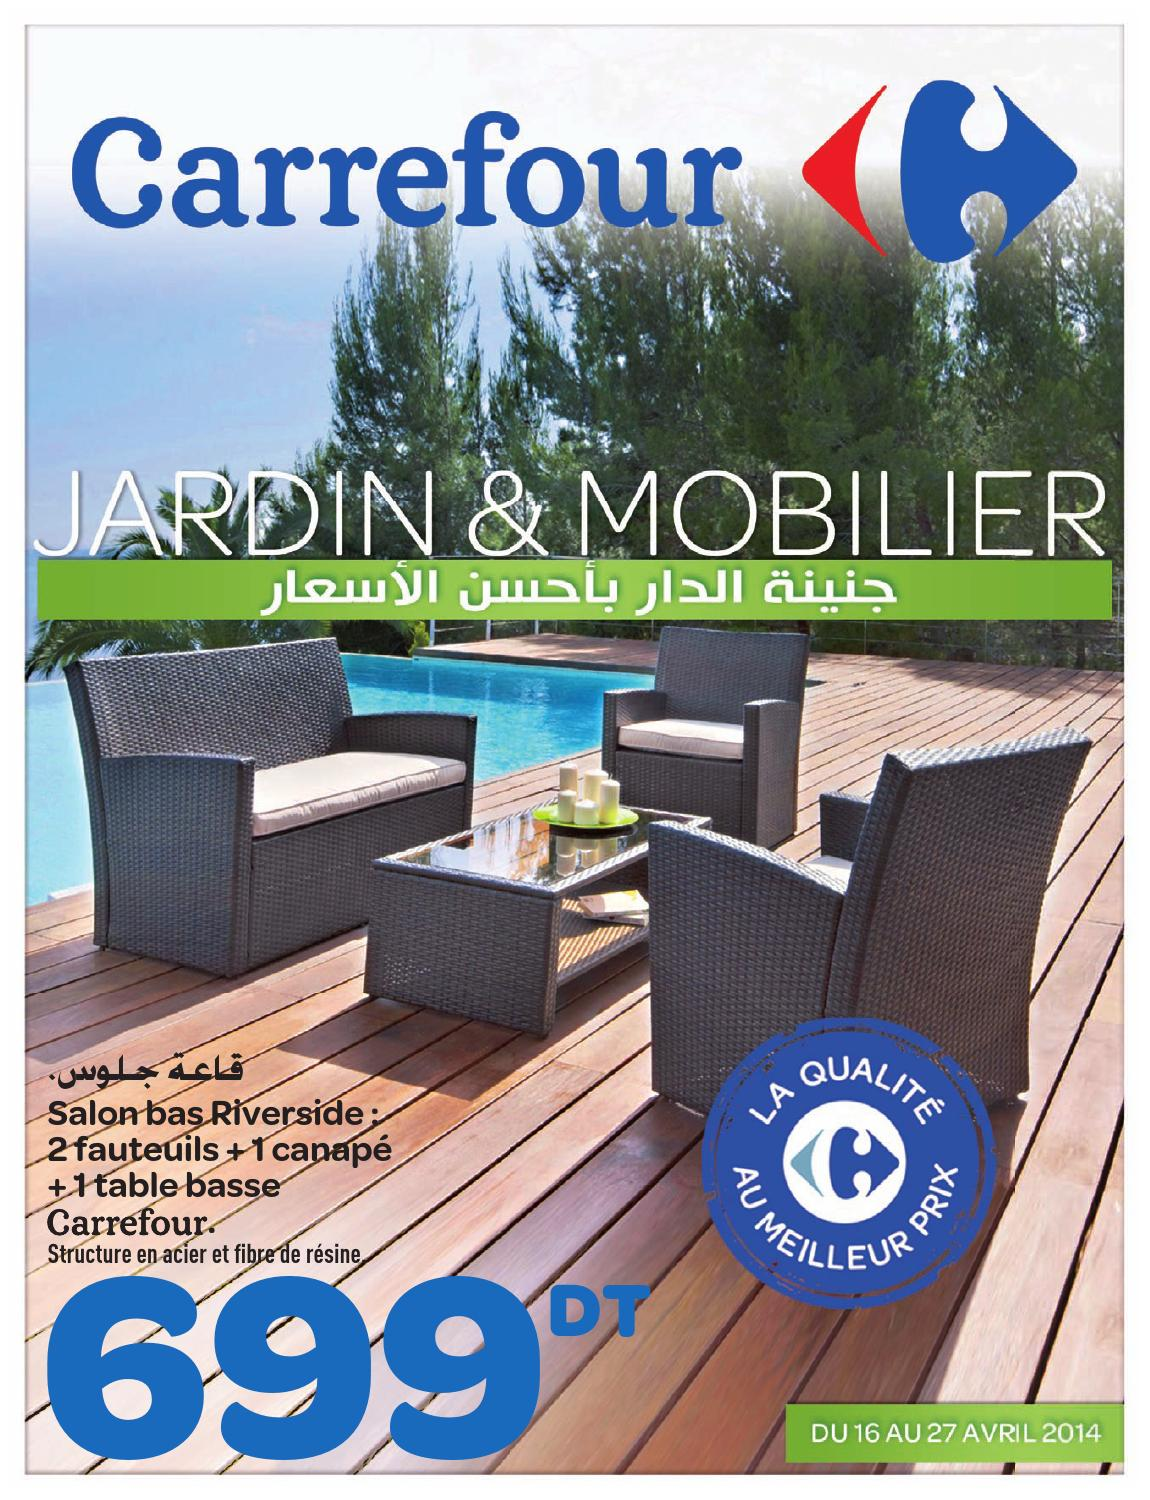 Catalogue carrefour jardin et mobilier by carrefour - Salon de jardin resine tressee carrefour ...